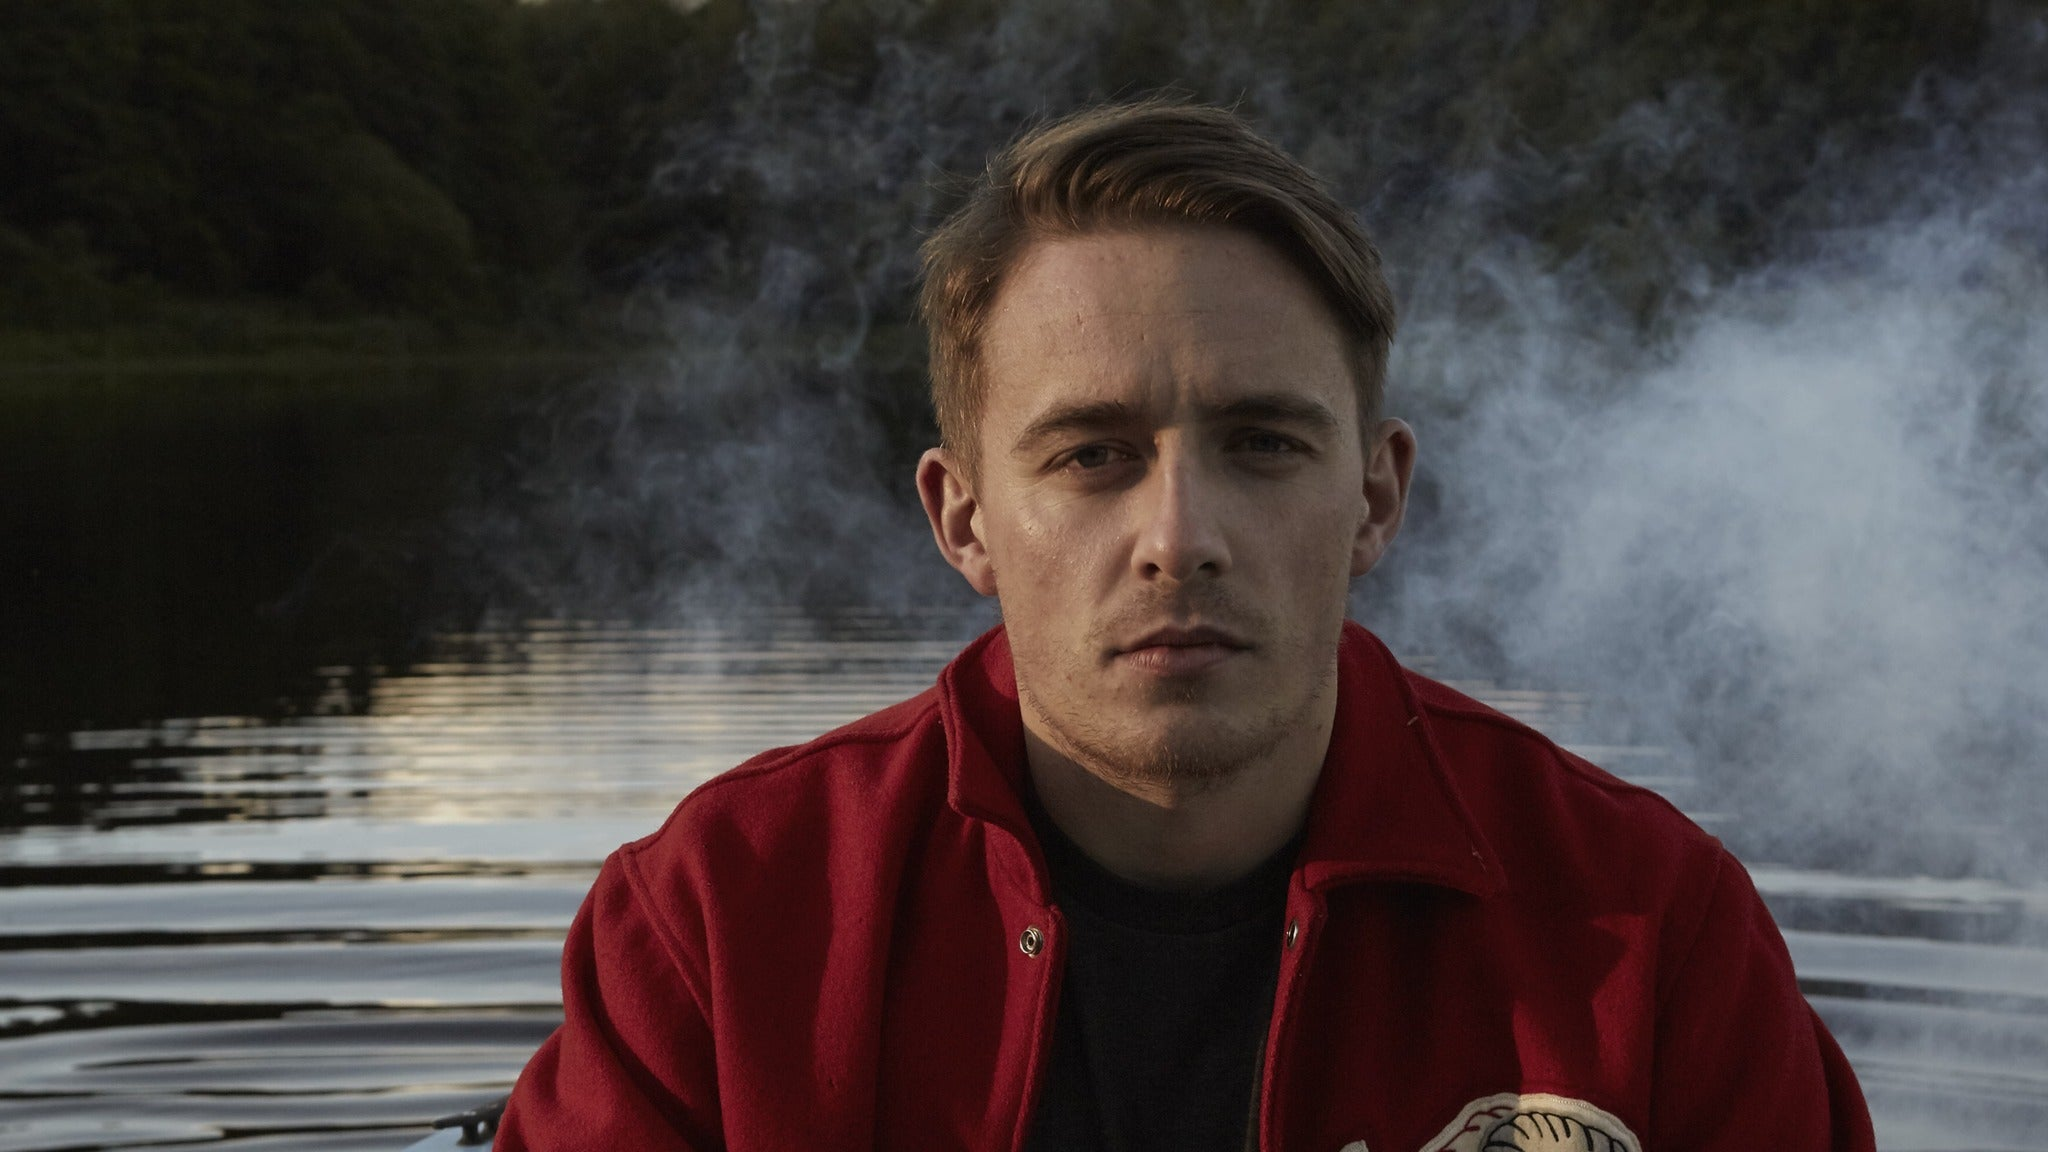 Dermot Kennedy: Without Fear Tour - Wallingford, CT 06492